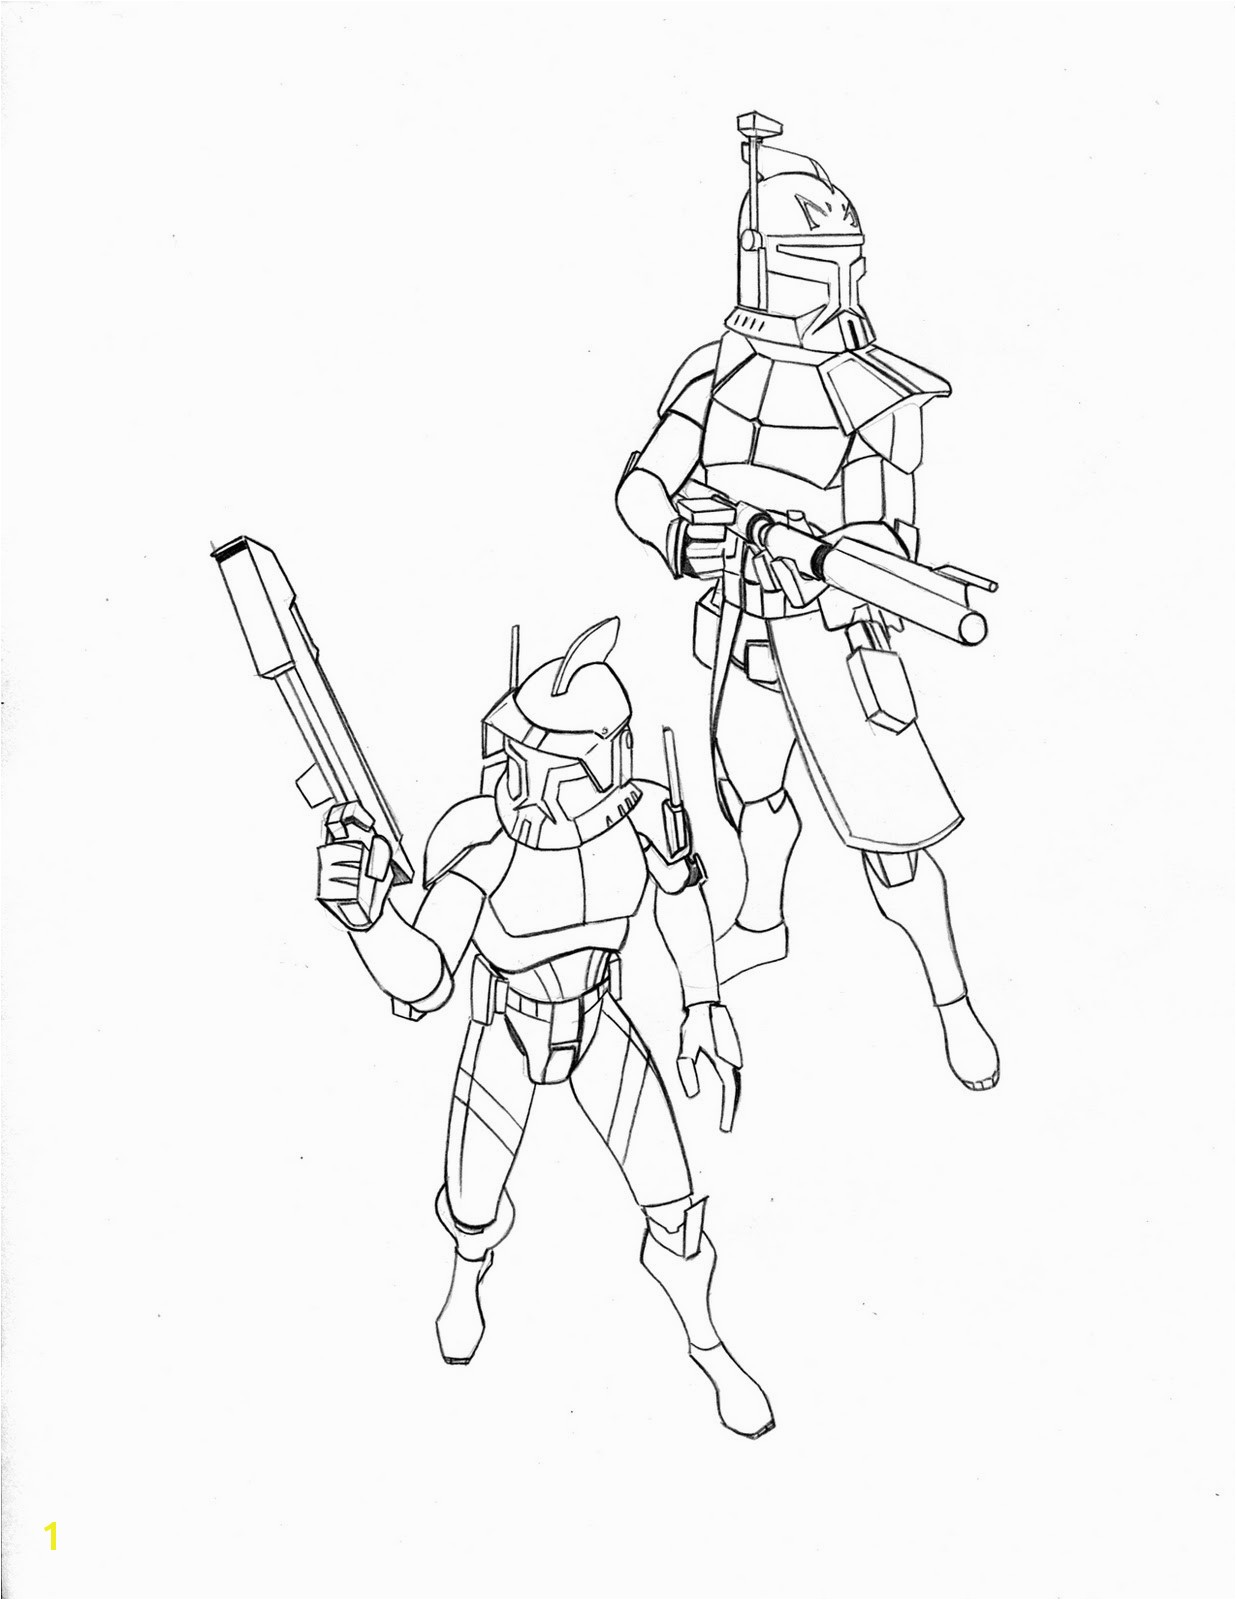 Commander Cody Coloring Page Mander Cody Coloring Page New C2343bab B092e1ea441d Pics